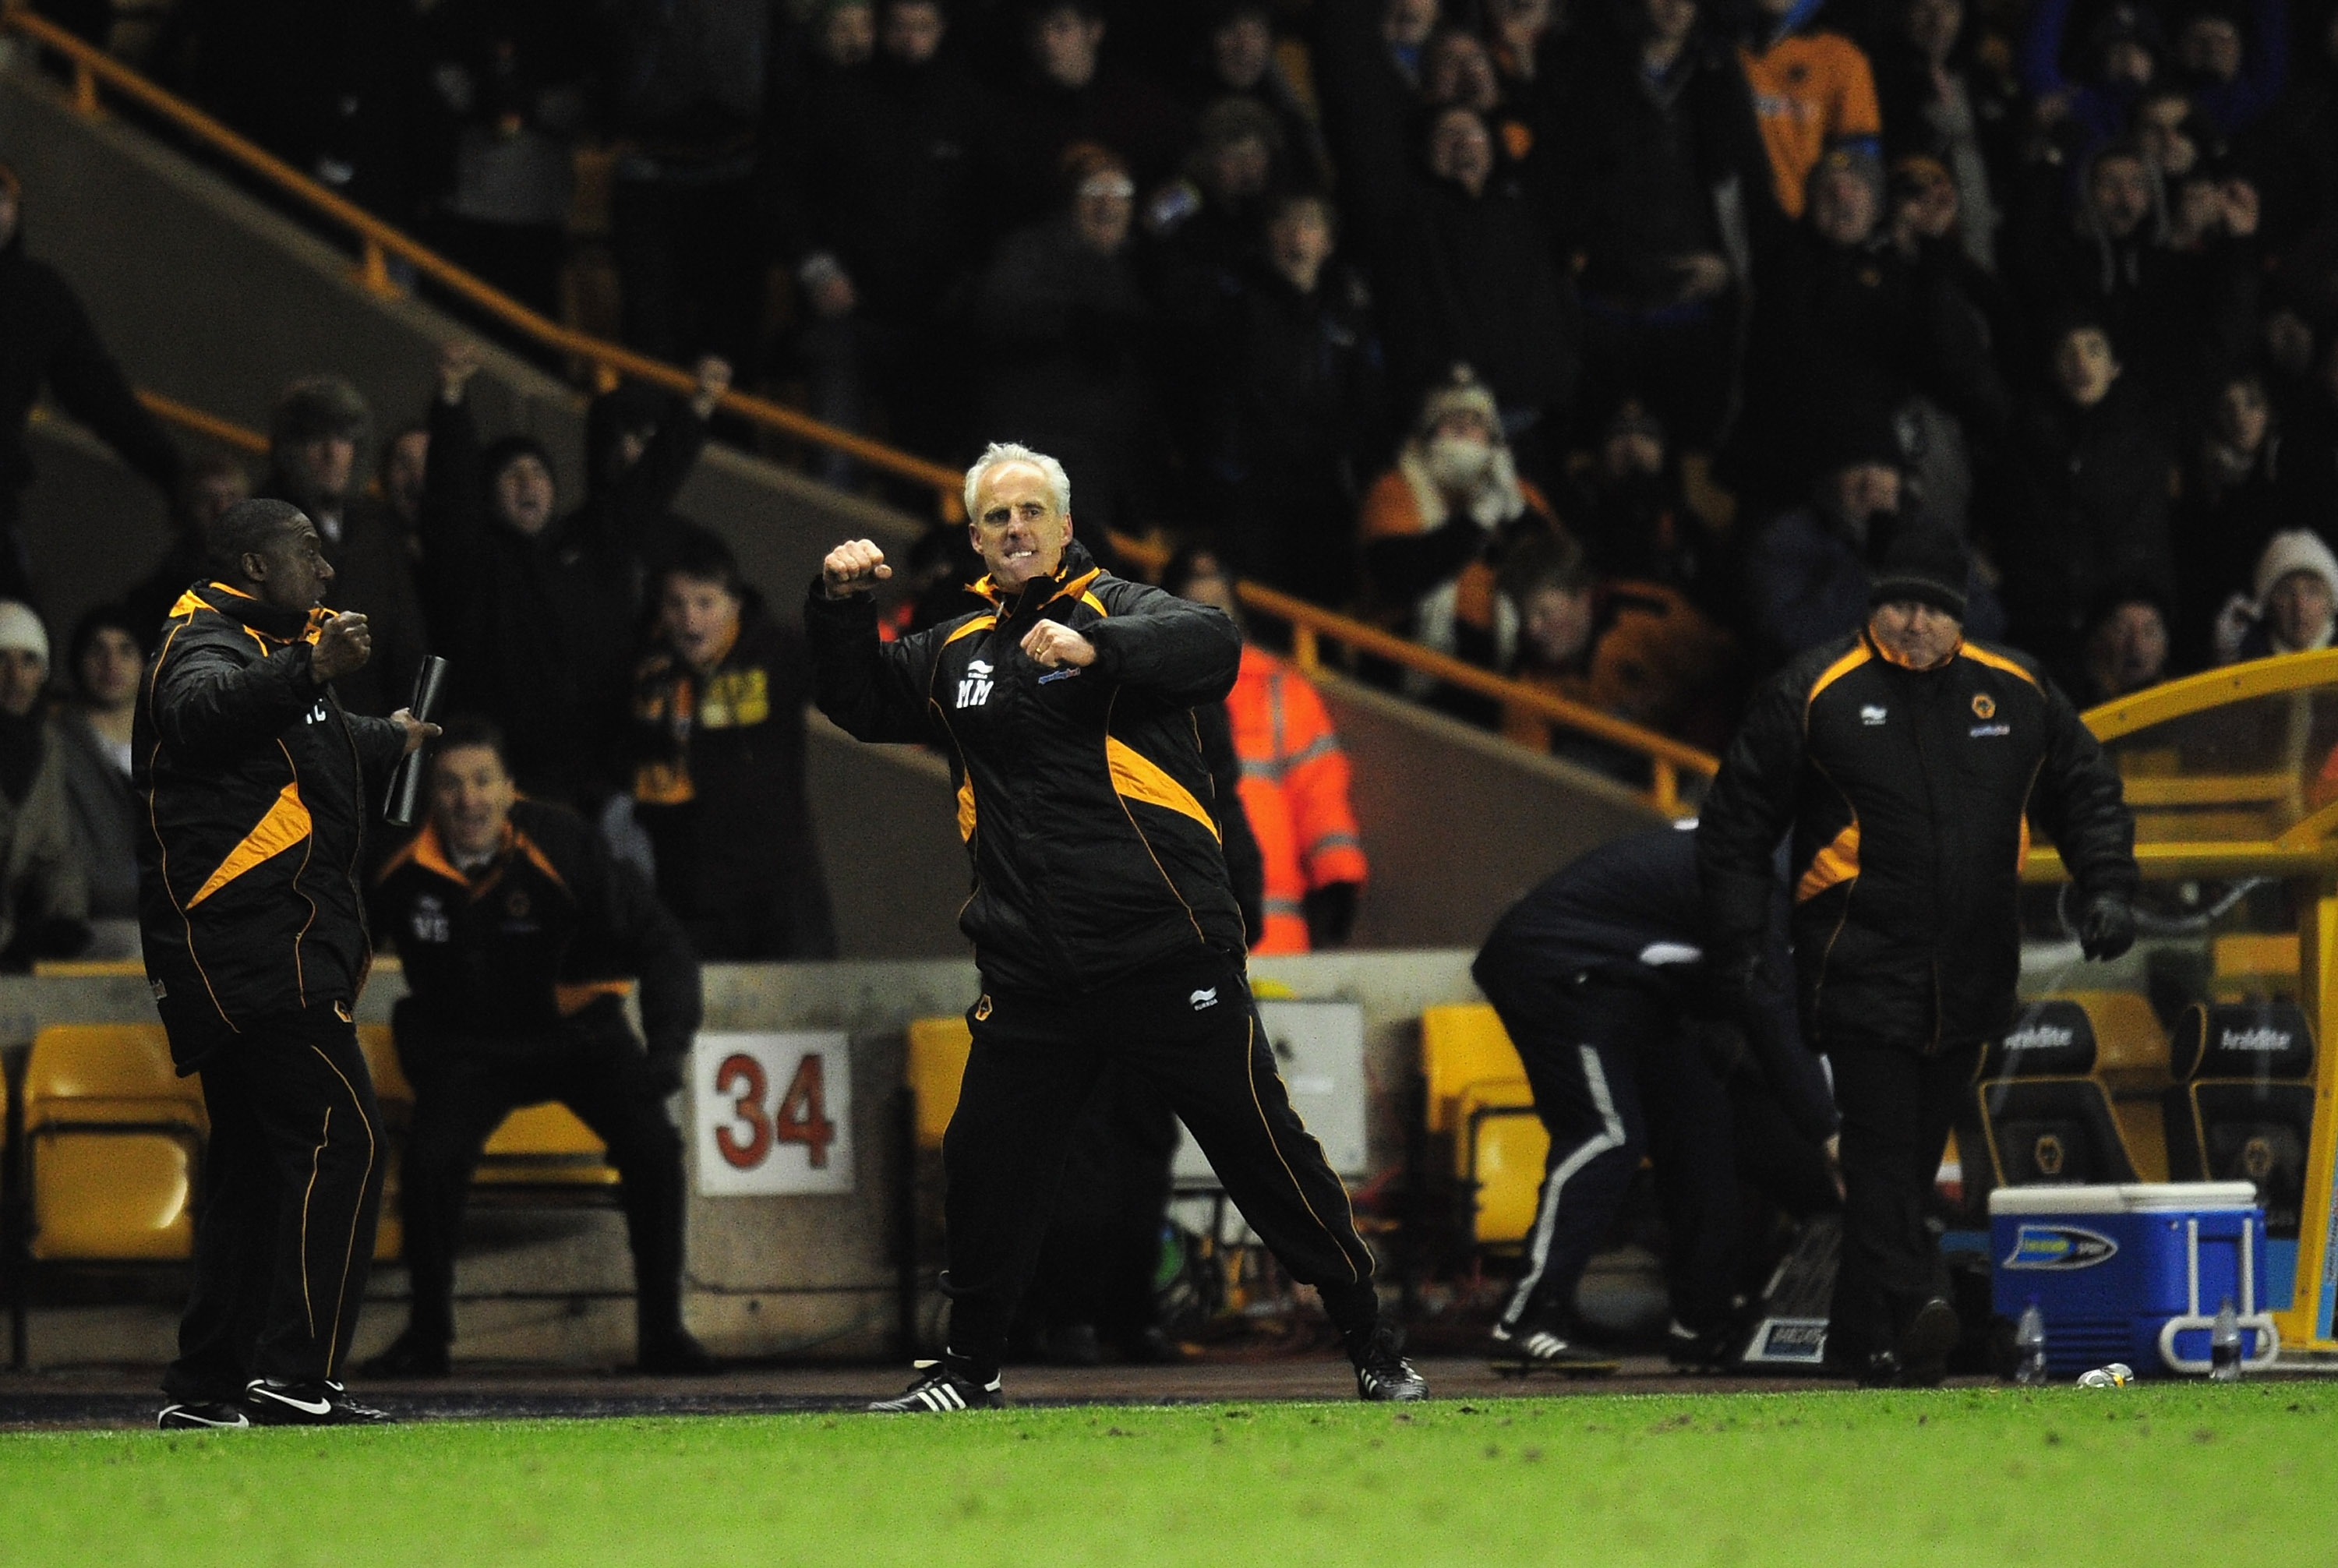 WOLVERHAMPTON, ENGLAND - NOVEMBER 27:  Mick McCarthy the Wolverhampton Wanderers manager celebrates at the end of the Barclays Premier League match between Wolverhampton Wanderers and Sunderland at Molineux on November 27, 2010 in Wolverhampton, England.